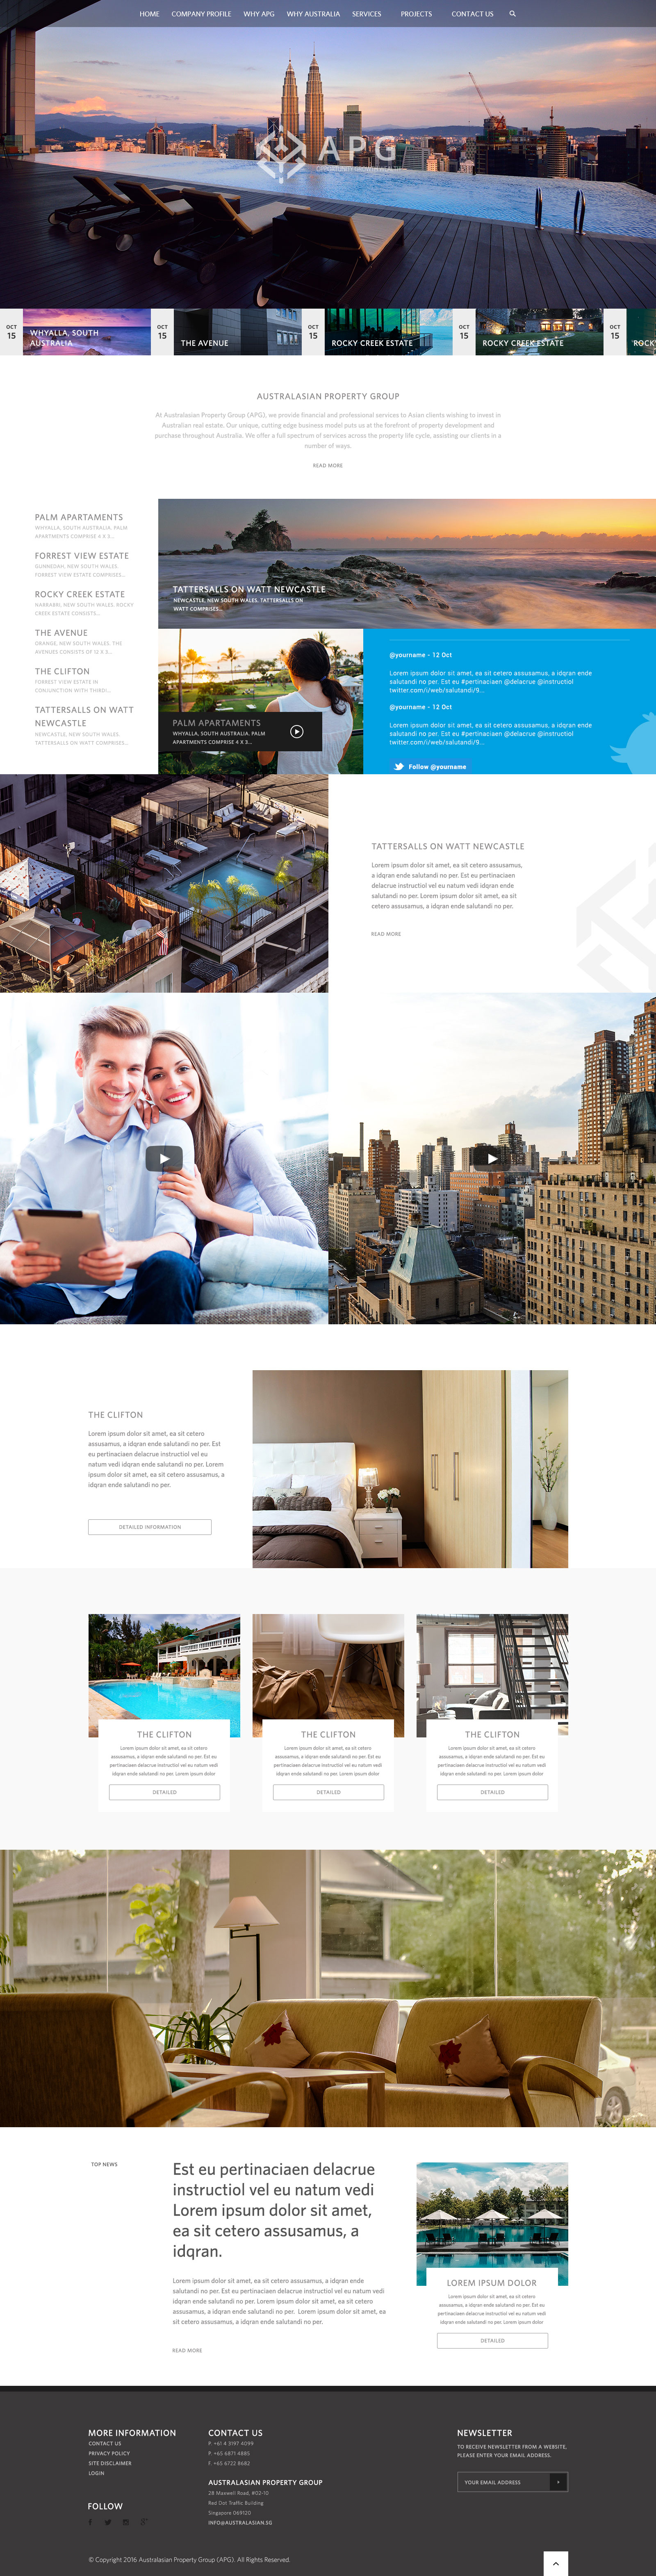 Real Estate Company - Landing page - Web-design - Merehead Development